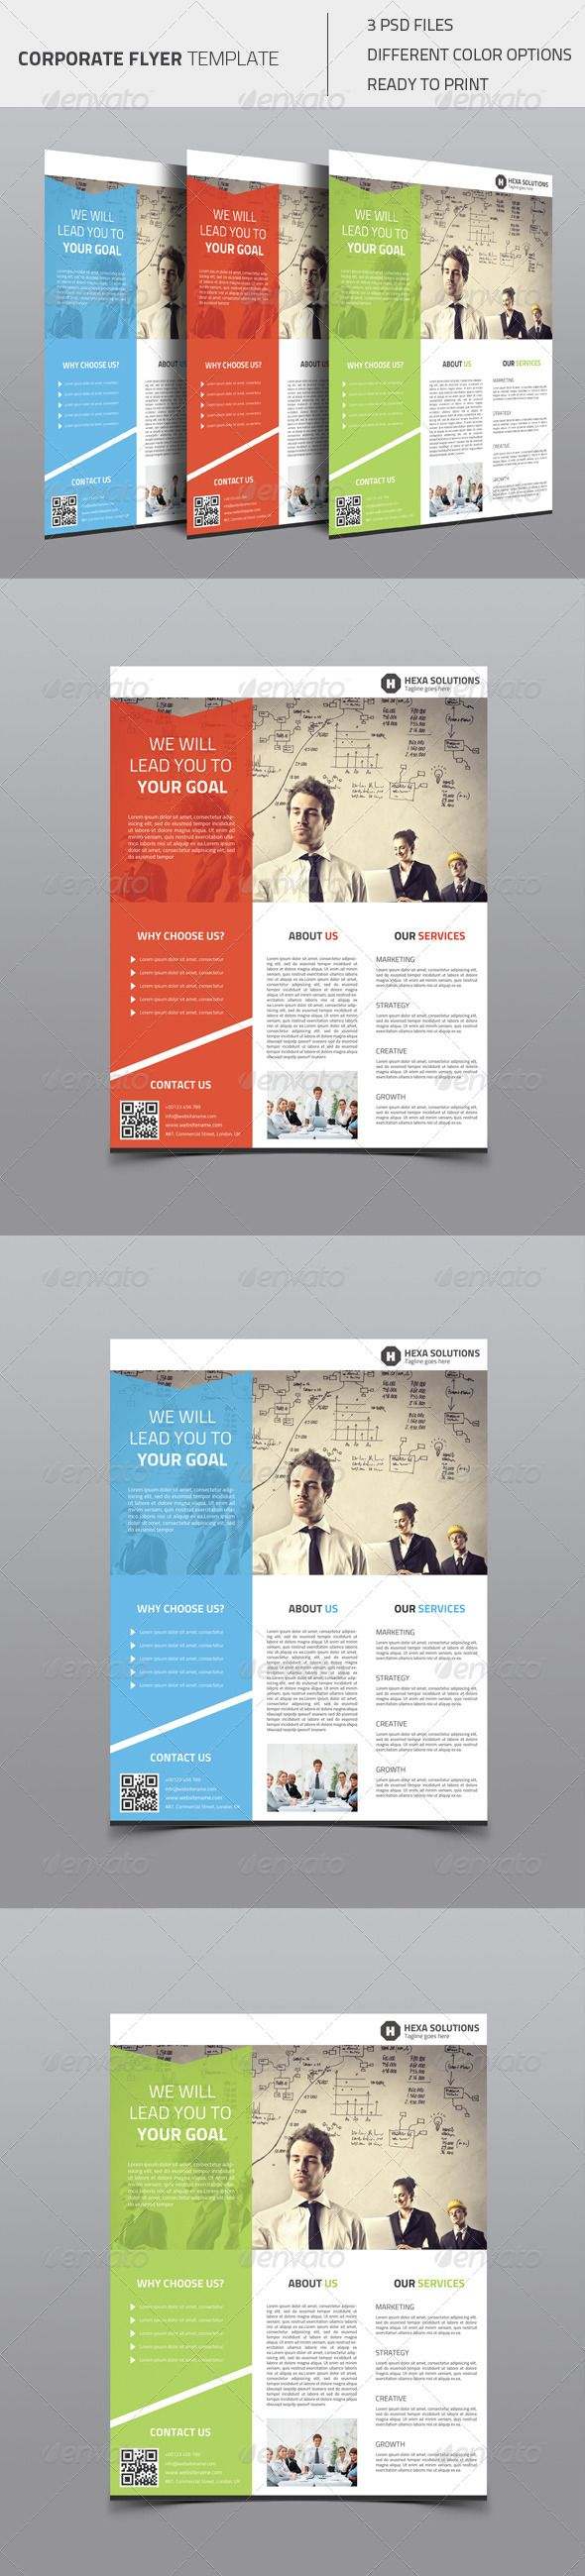 best ideas about flyer design graphic design corporate flyer 02